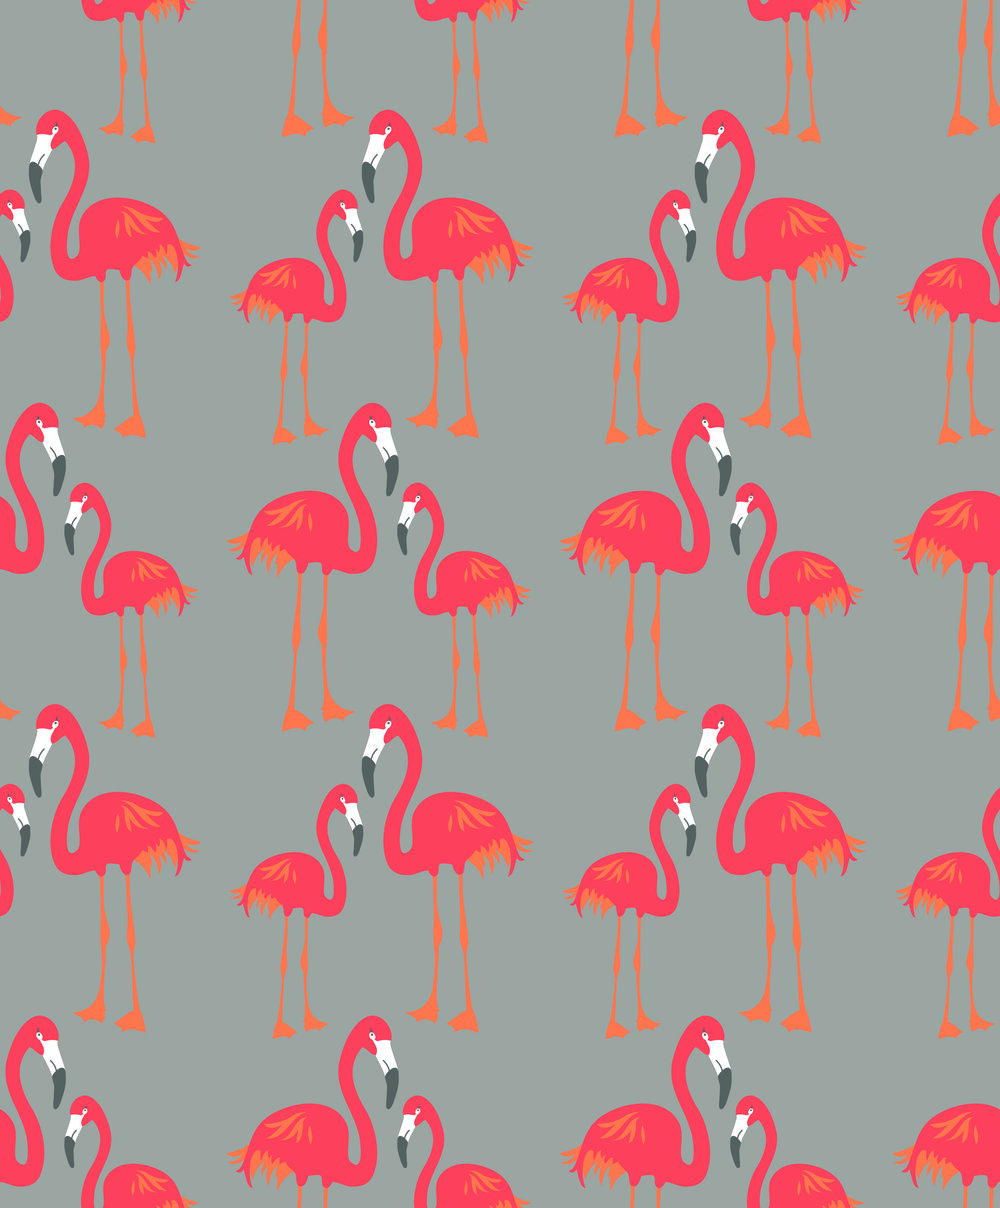 flamingo lt grey-01.jpg